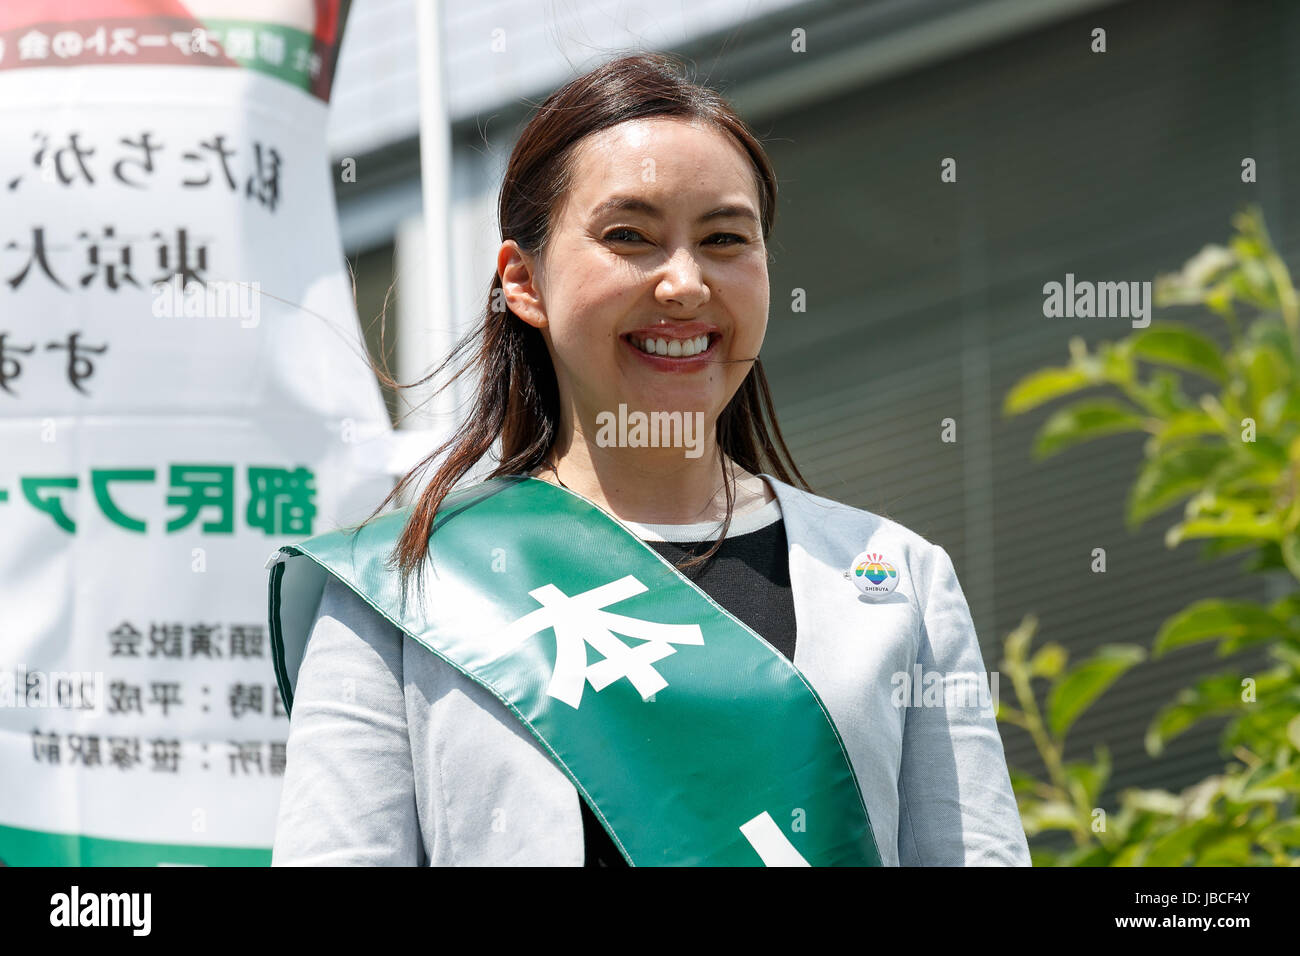 Tokyo, Japan. 10th June, 2017. Candidate Airi Ryuen, attends a campaign event for Tokyo's Metropolitan Assembly - Stock Image